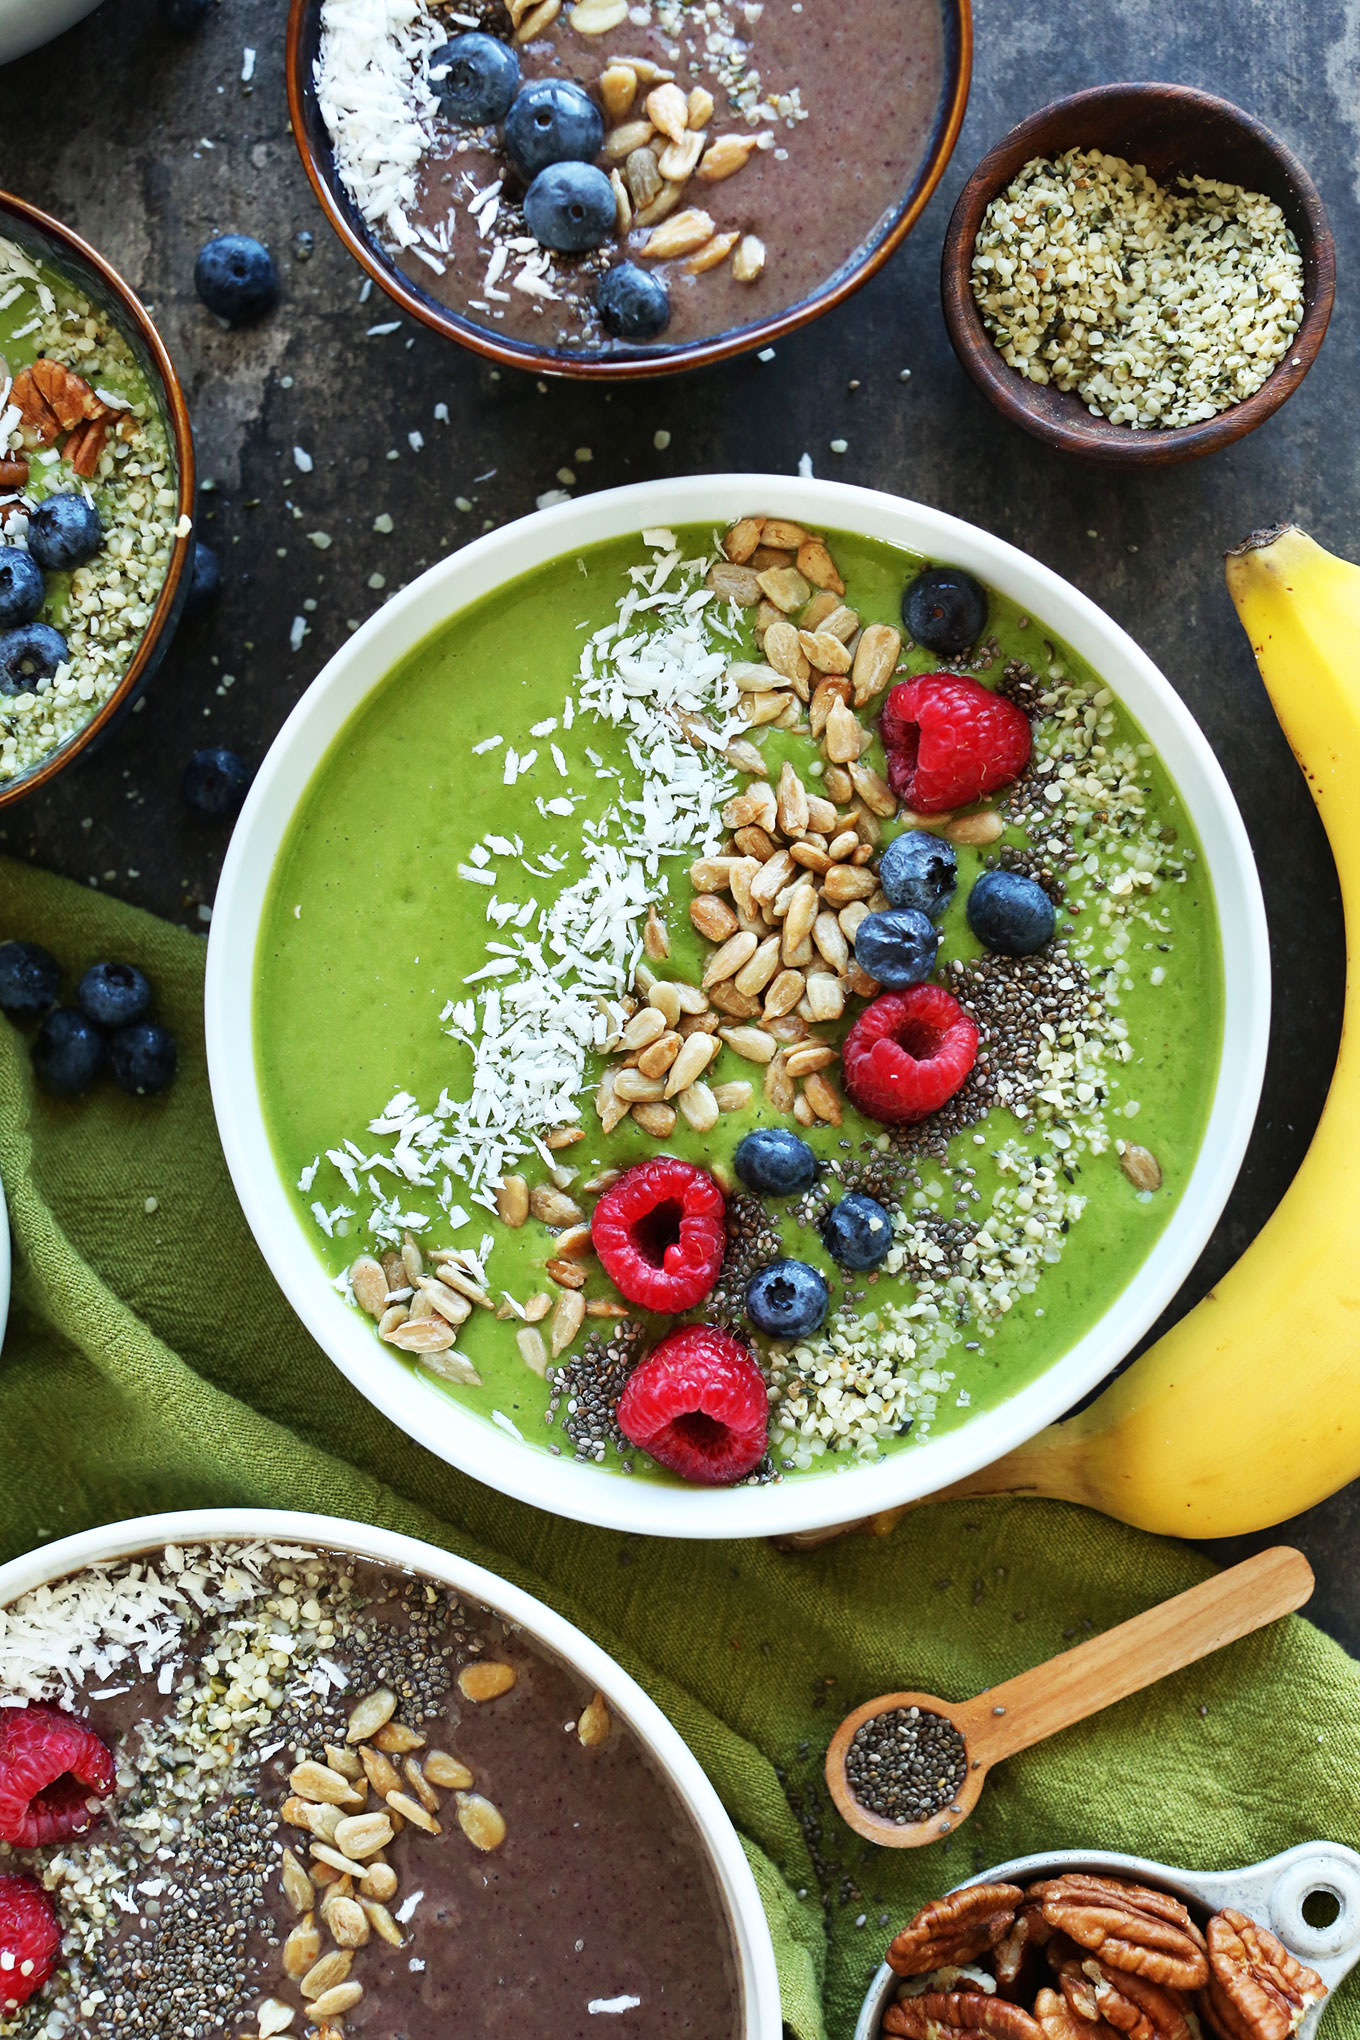 Super Green Smoothie Bowl topped with shredded coconut, sunflower seeds, hemp seeds, chia seeds, and fresh berries